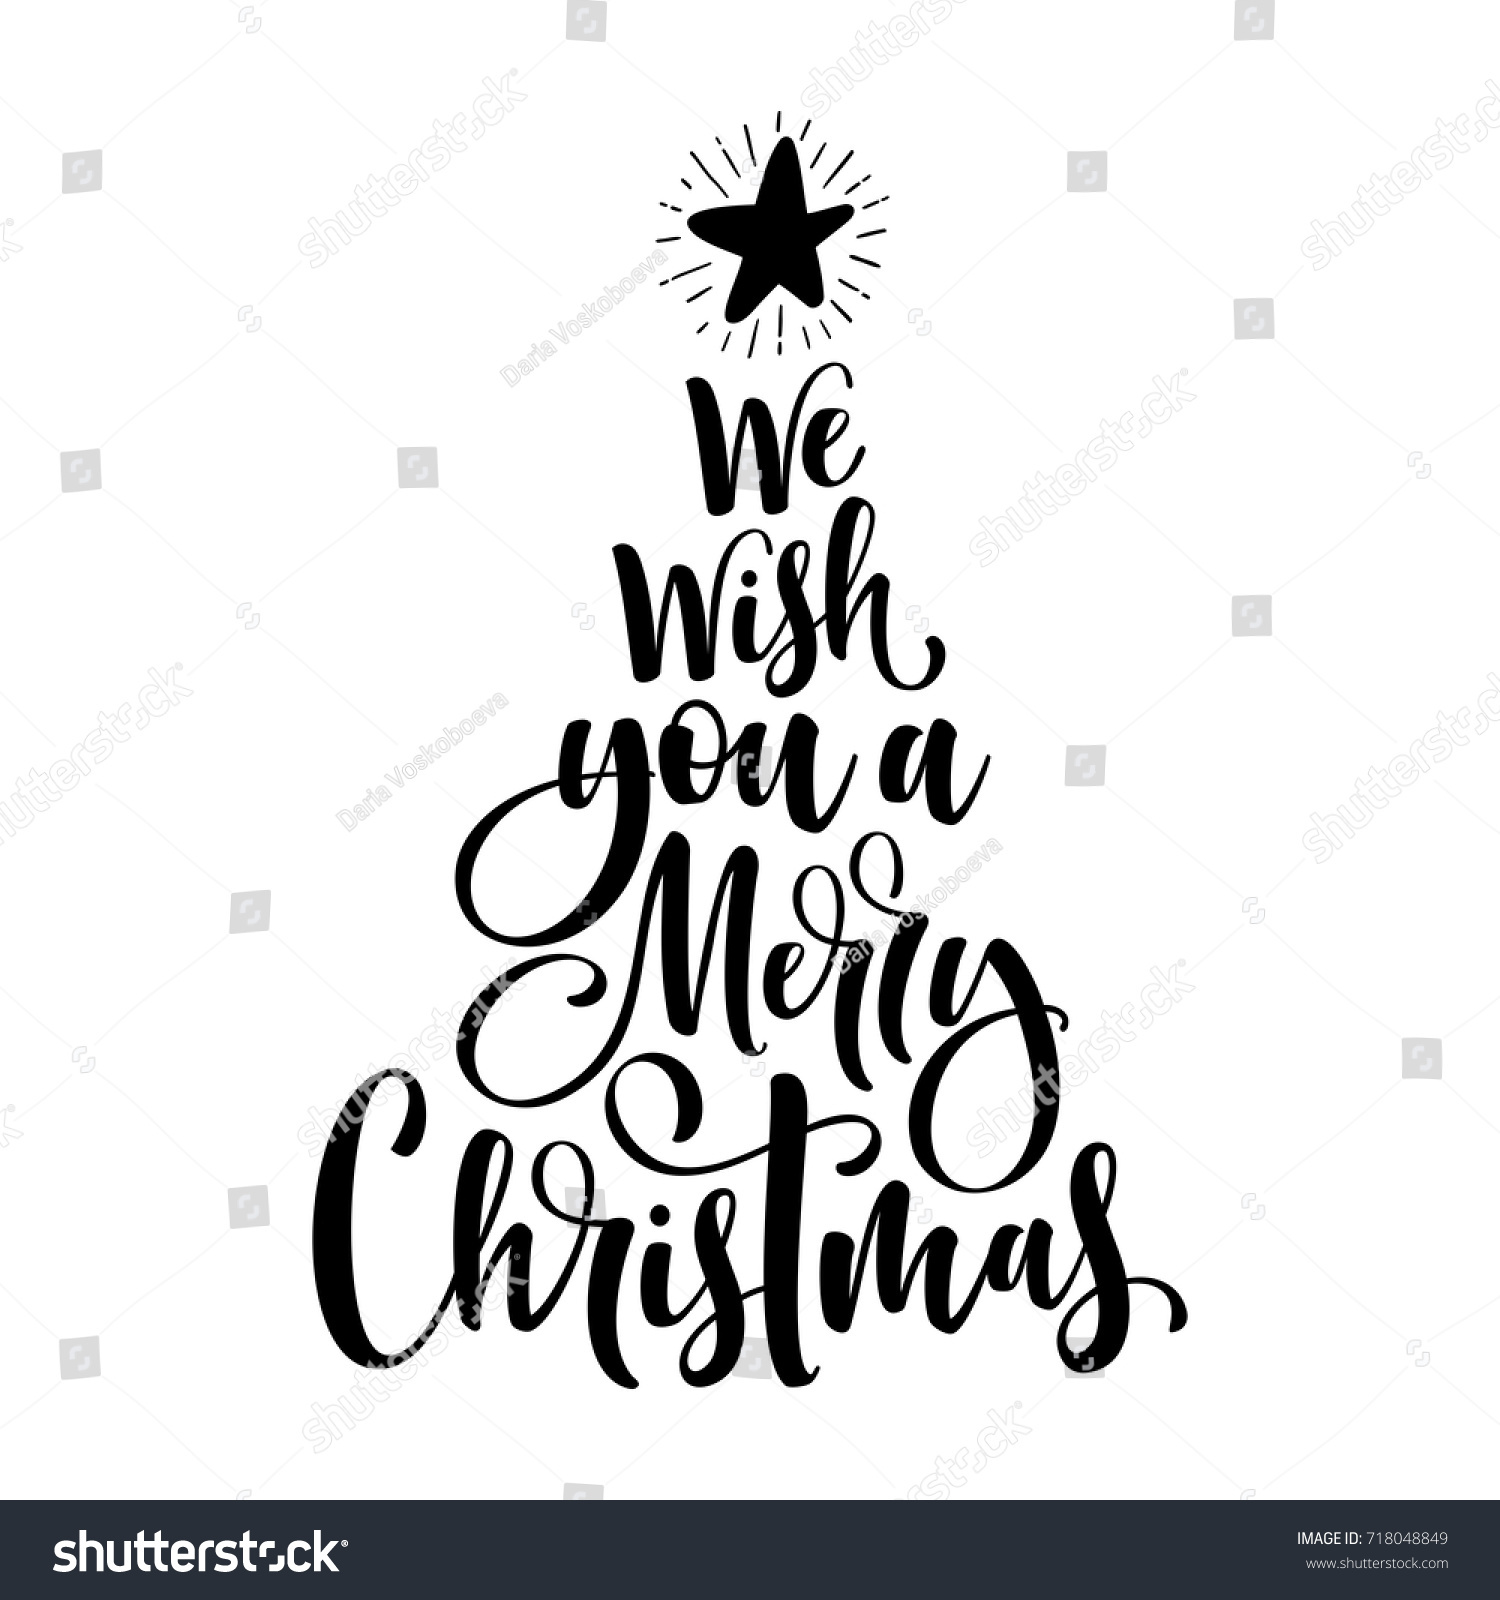 we wish you a merry christmas calligraphy text for greeting cards